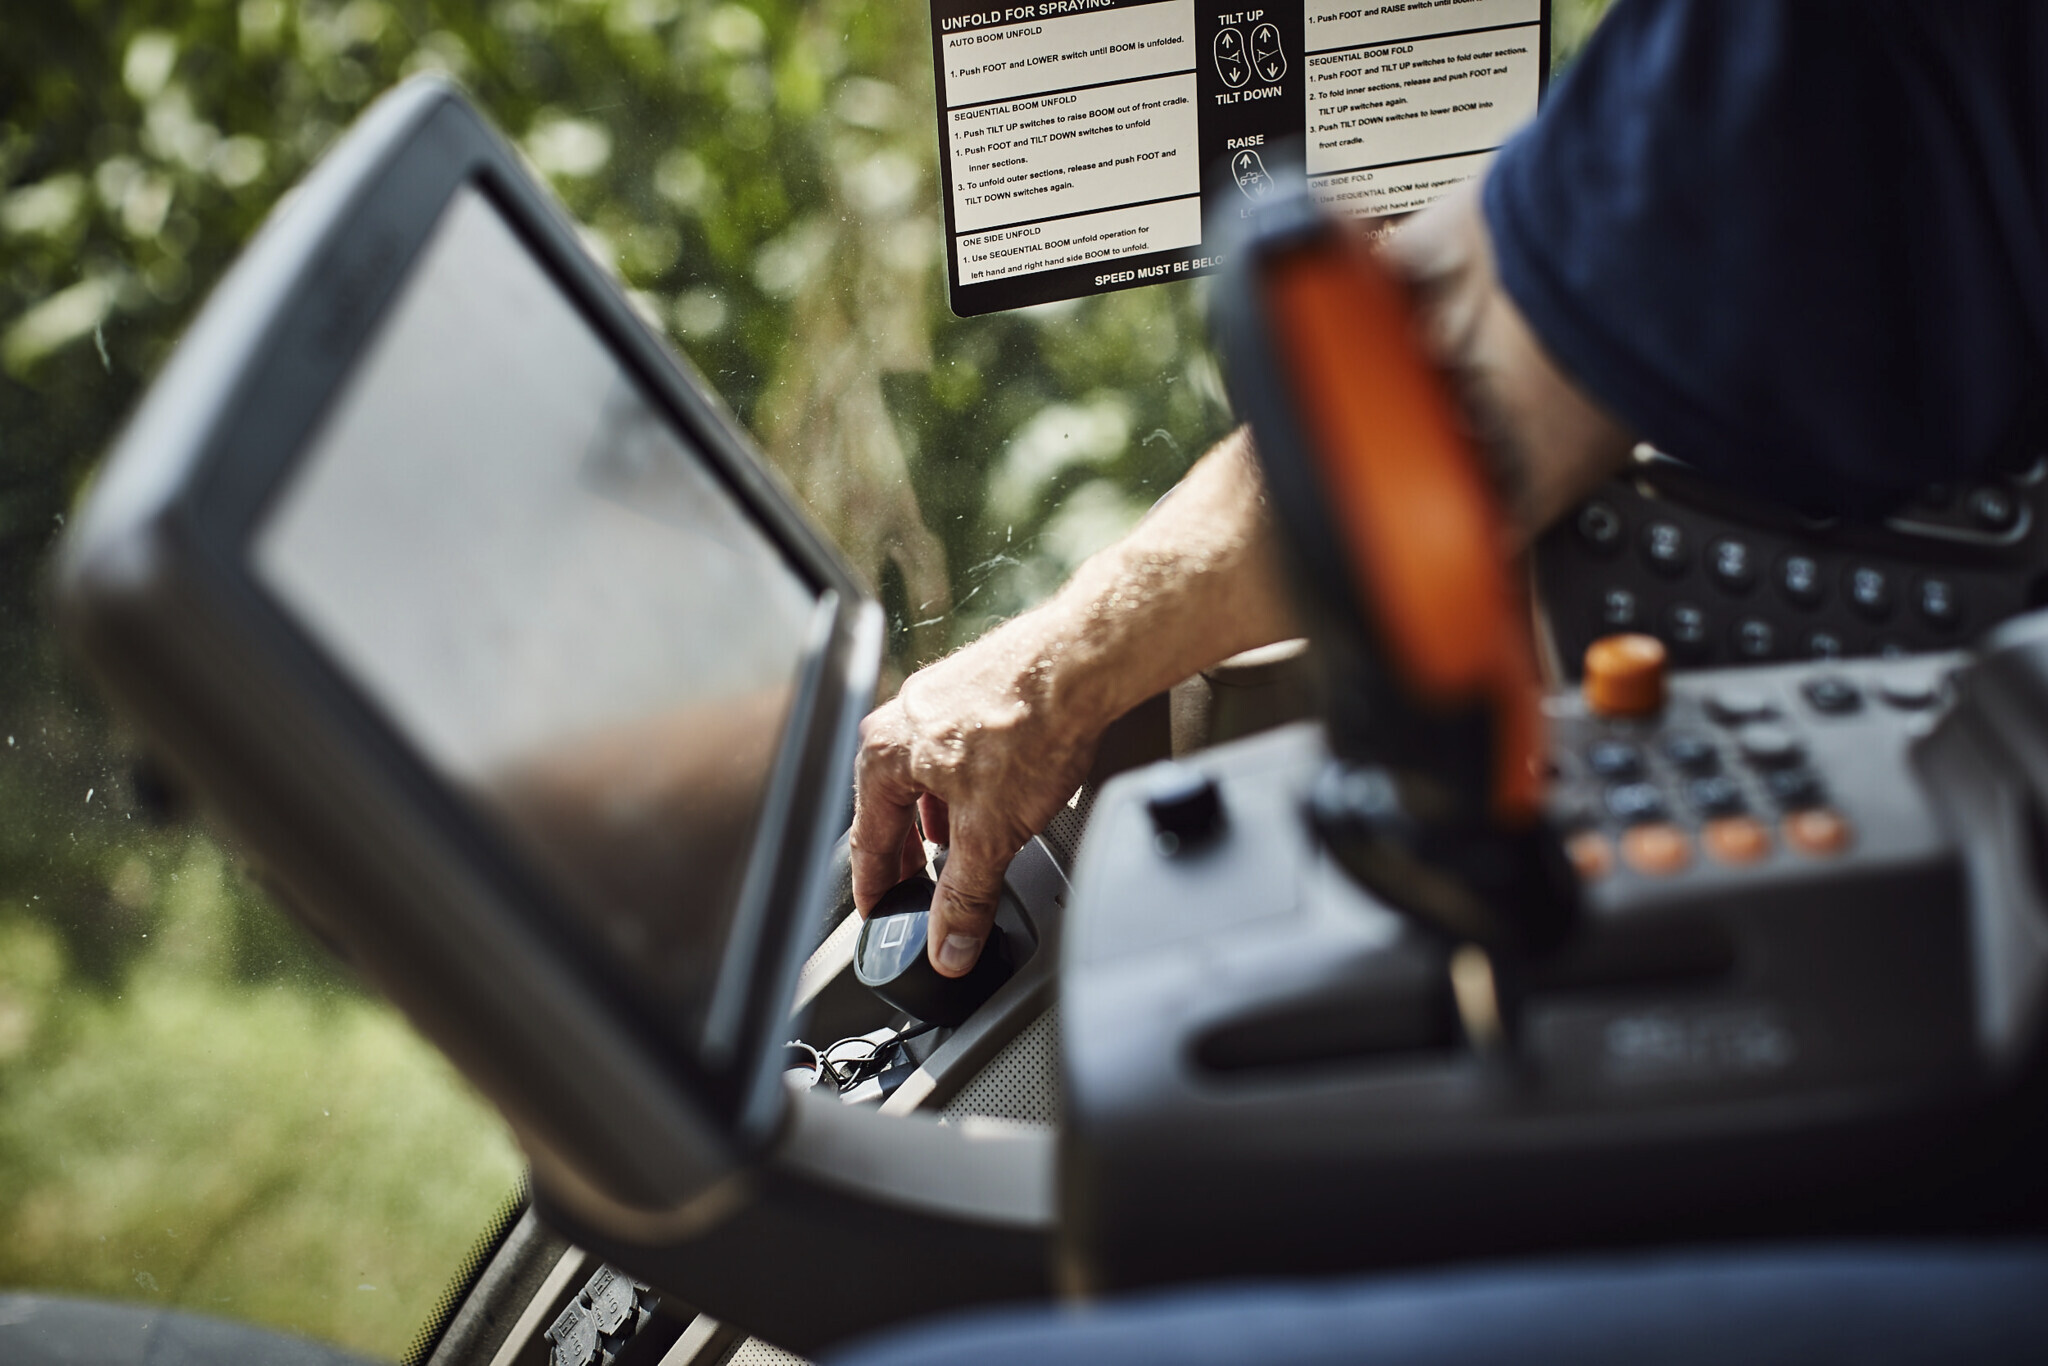 A farmer working in a tractor holding the FieldView Drive.